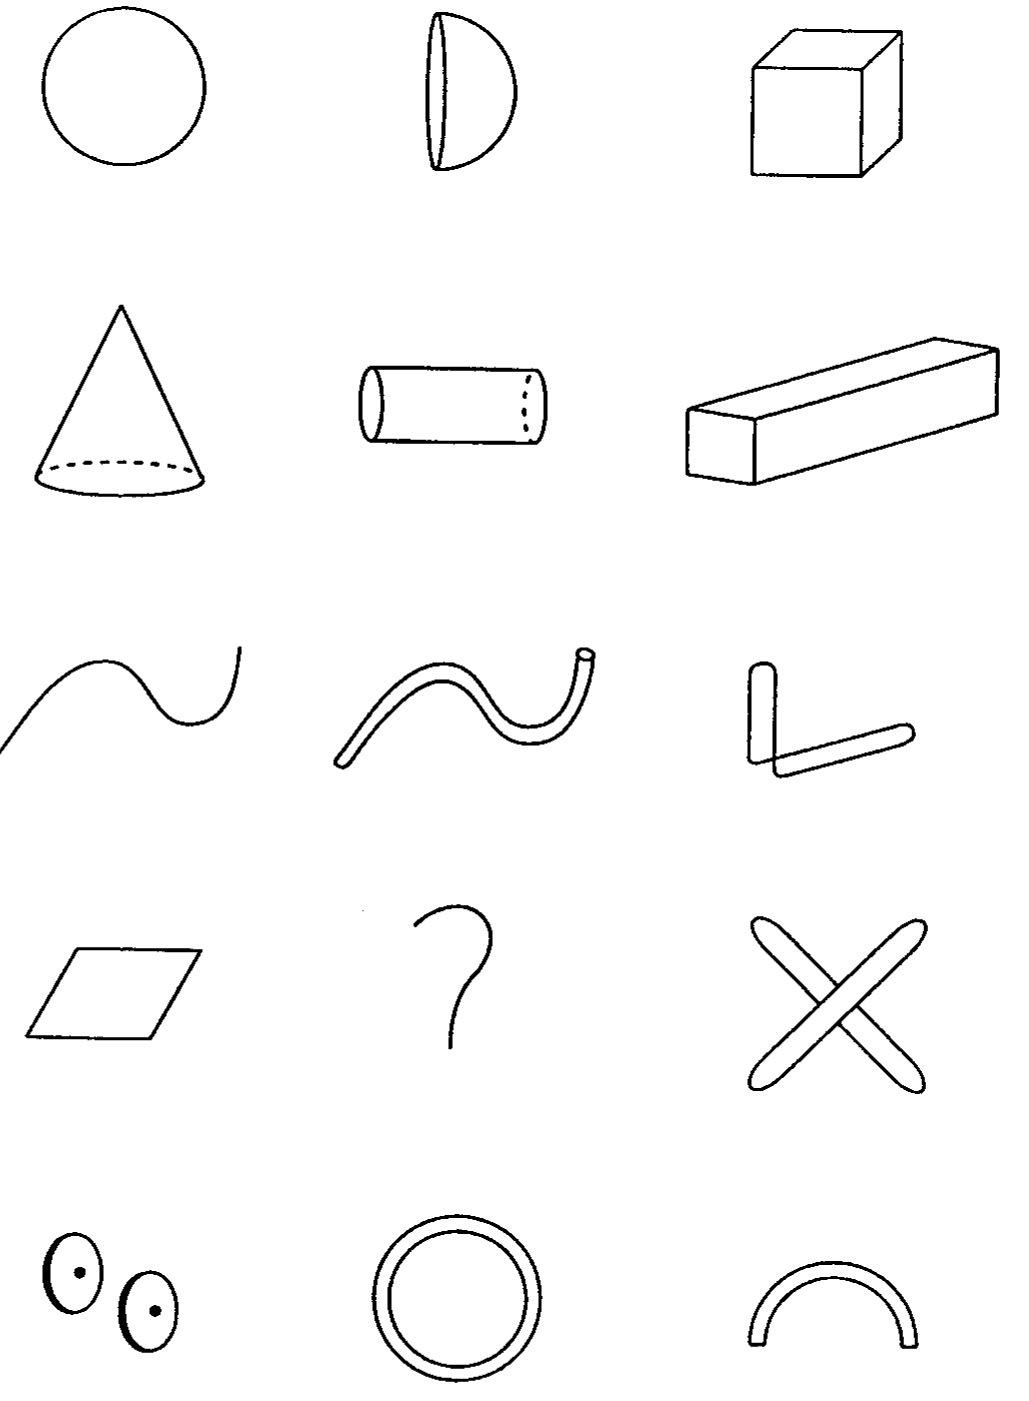 180921 charles eastman new directions in design cognition studies Michigan Police Vehicle Evaluation he had them memorize shapes such as those shown in figure three he then asked them to make interesting positions in their heads of the memorized shapes